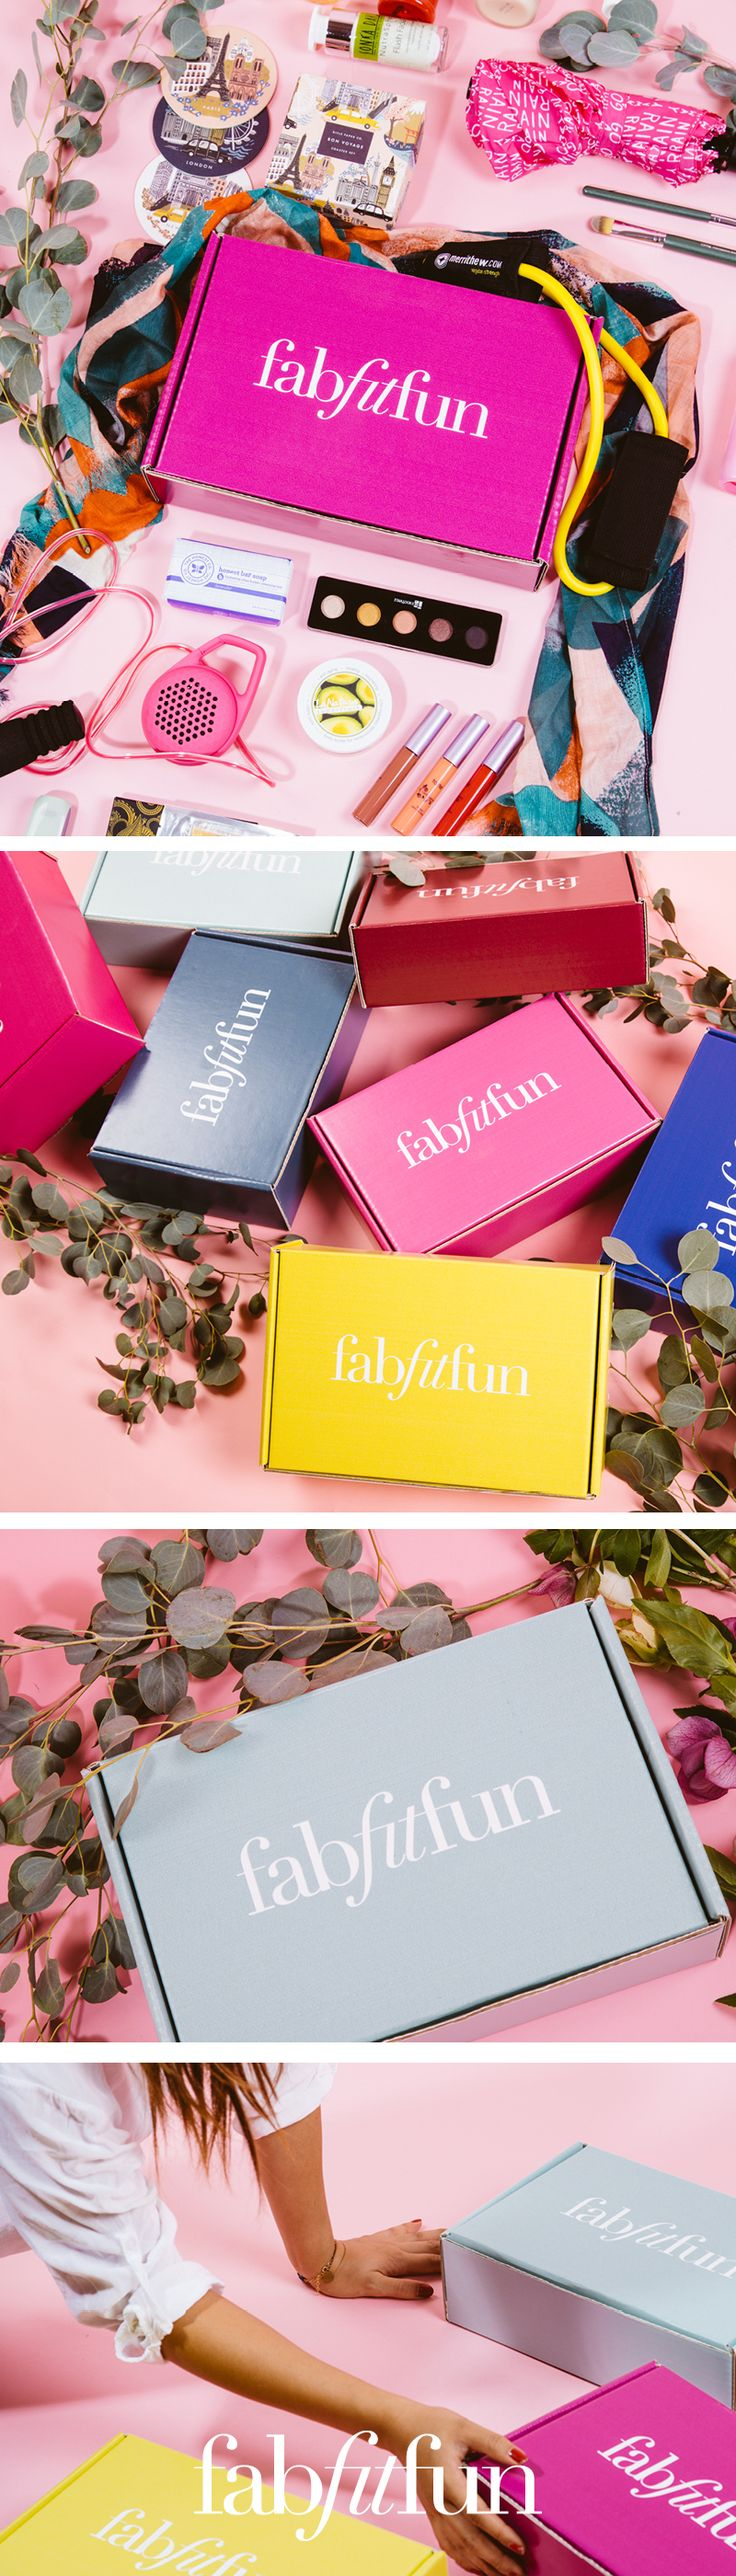 Have you tried the FabFitFun box? It's like a big surprise gift delivered to your doorstep each season. The box is stacked with premium, full-size beauty, fashion, and fitness products. See why we're the #1 full-size box! Use code PINTEREST to get your first box for just $39.99! That's $250 of glam goodies for just $39.99!